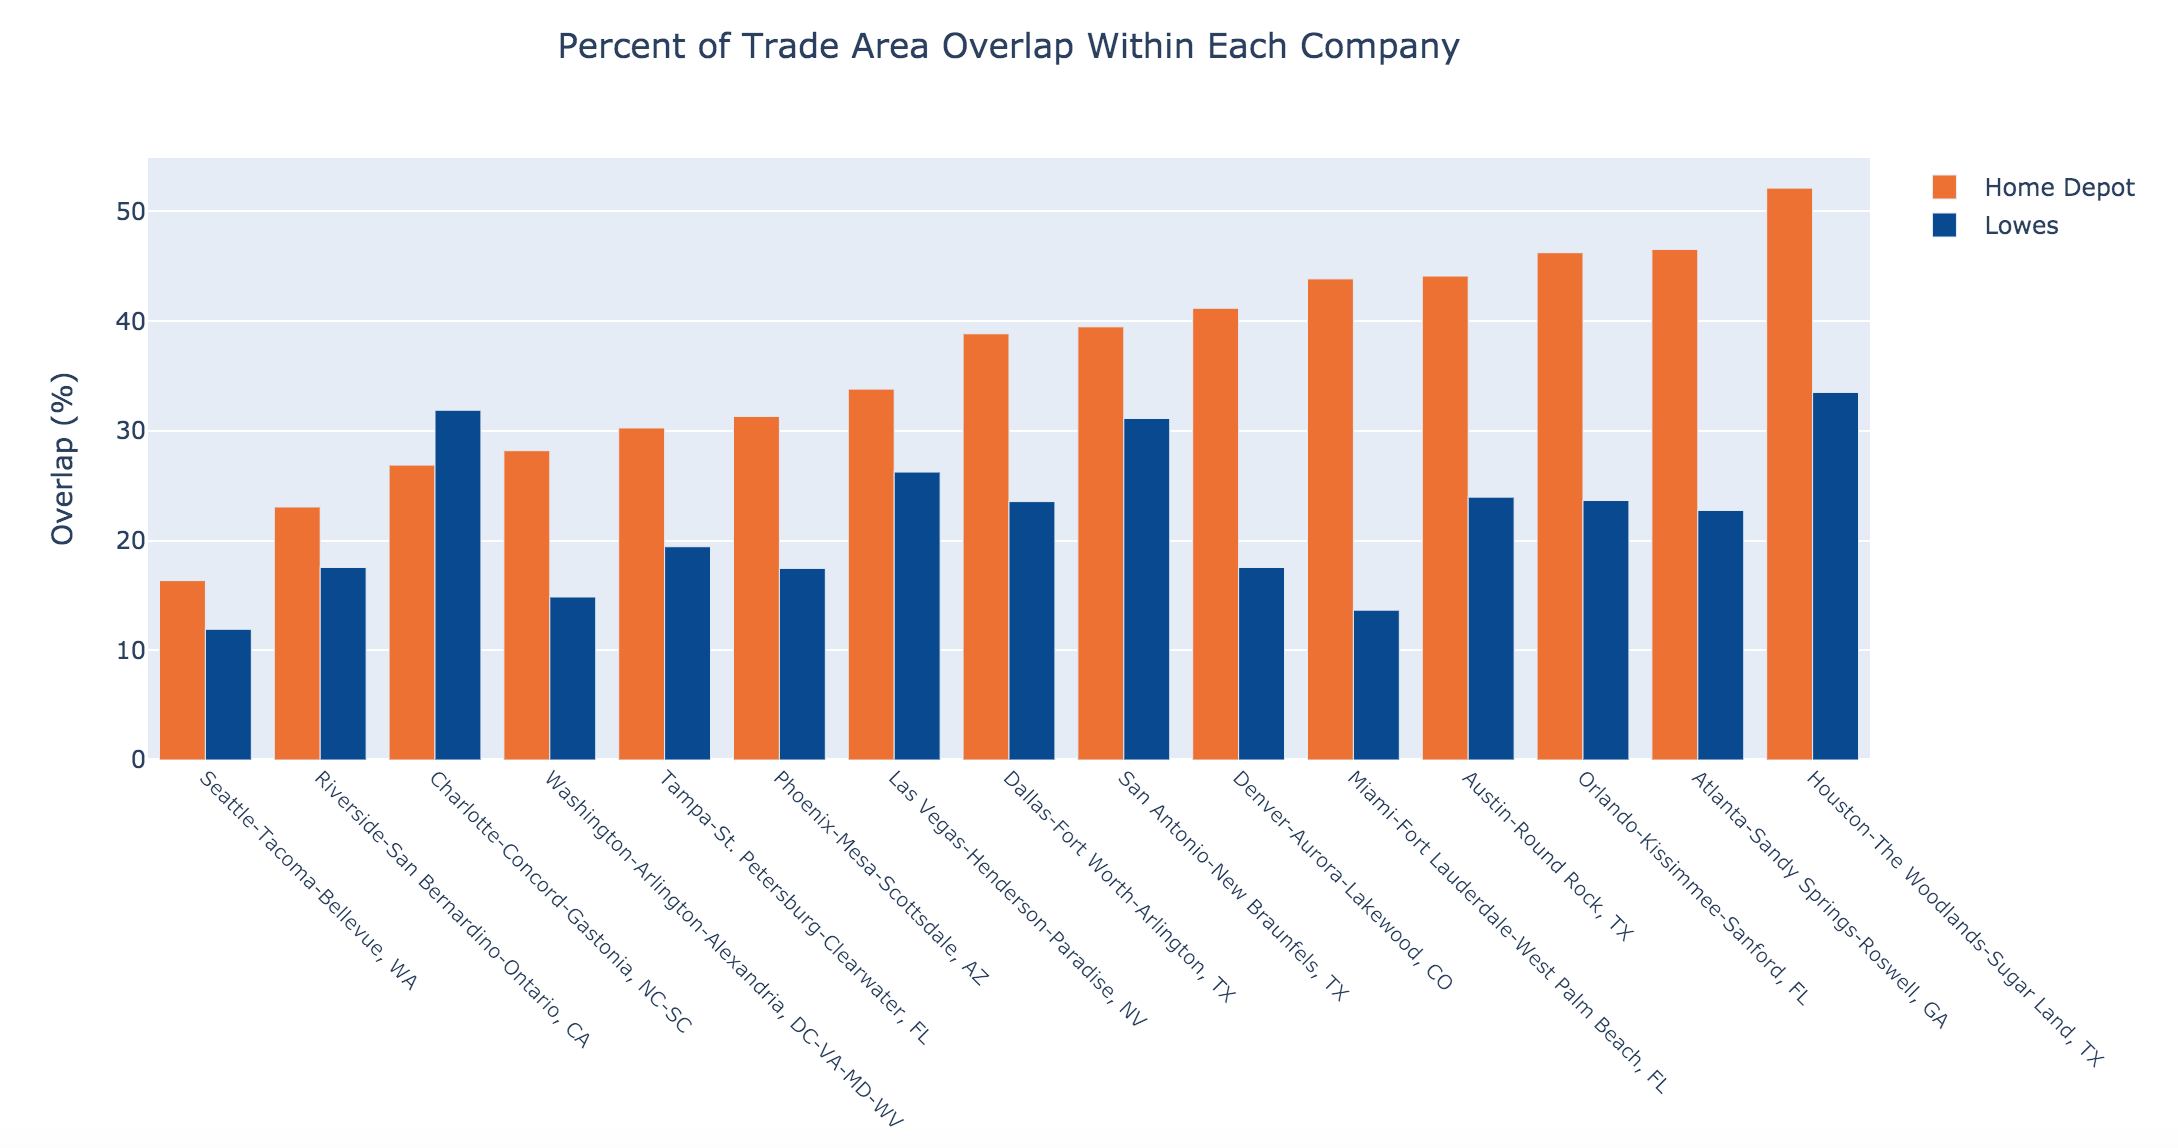 Trade Area Overlap Within Home Depot and Lowes